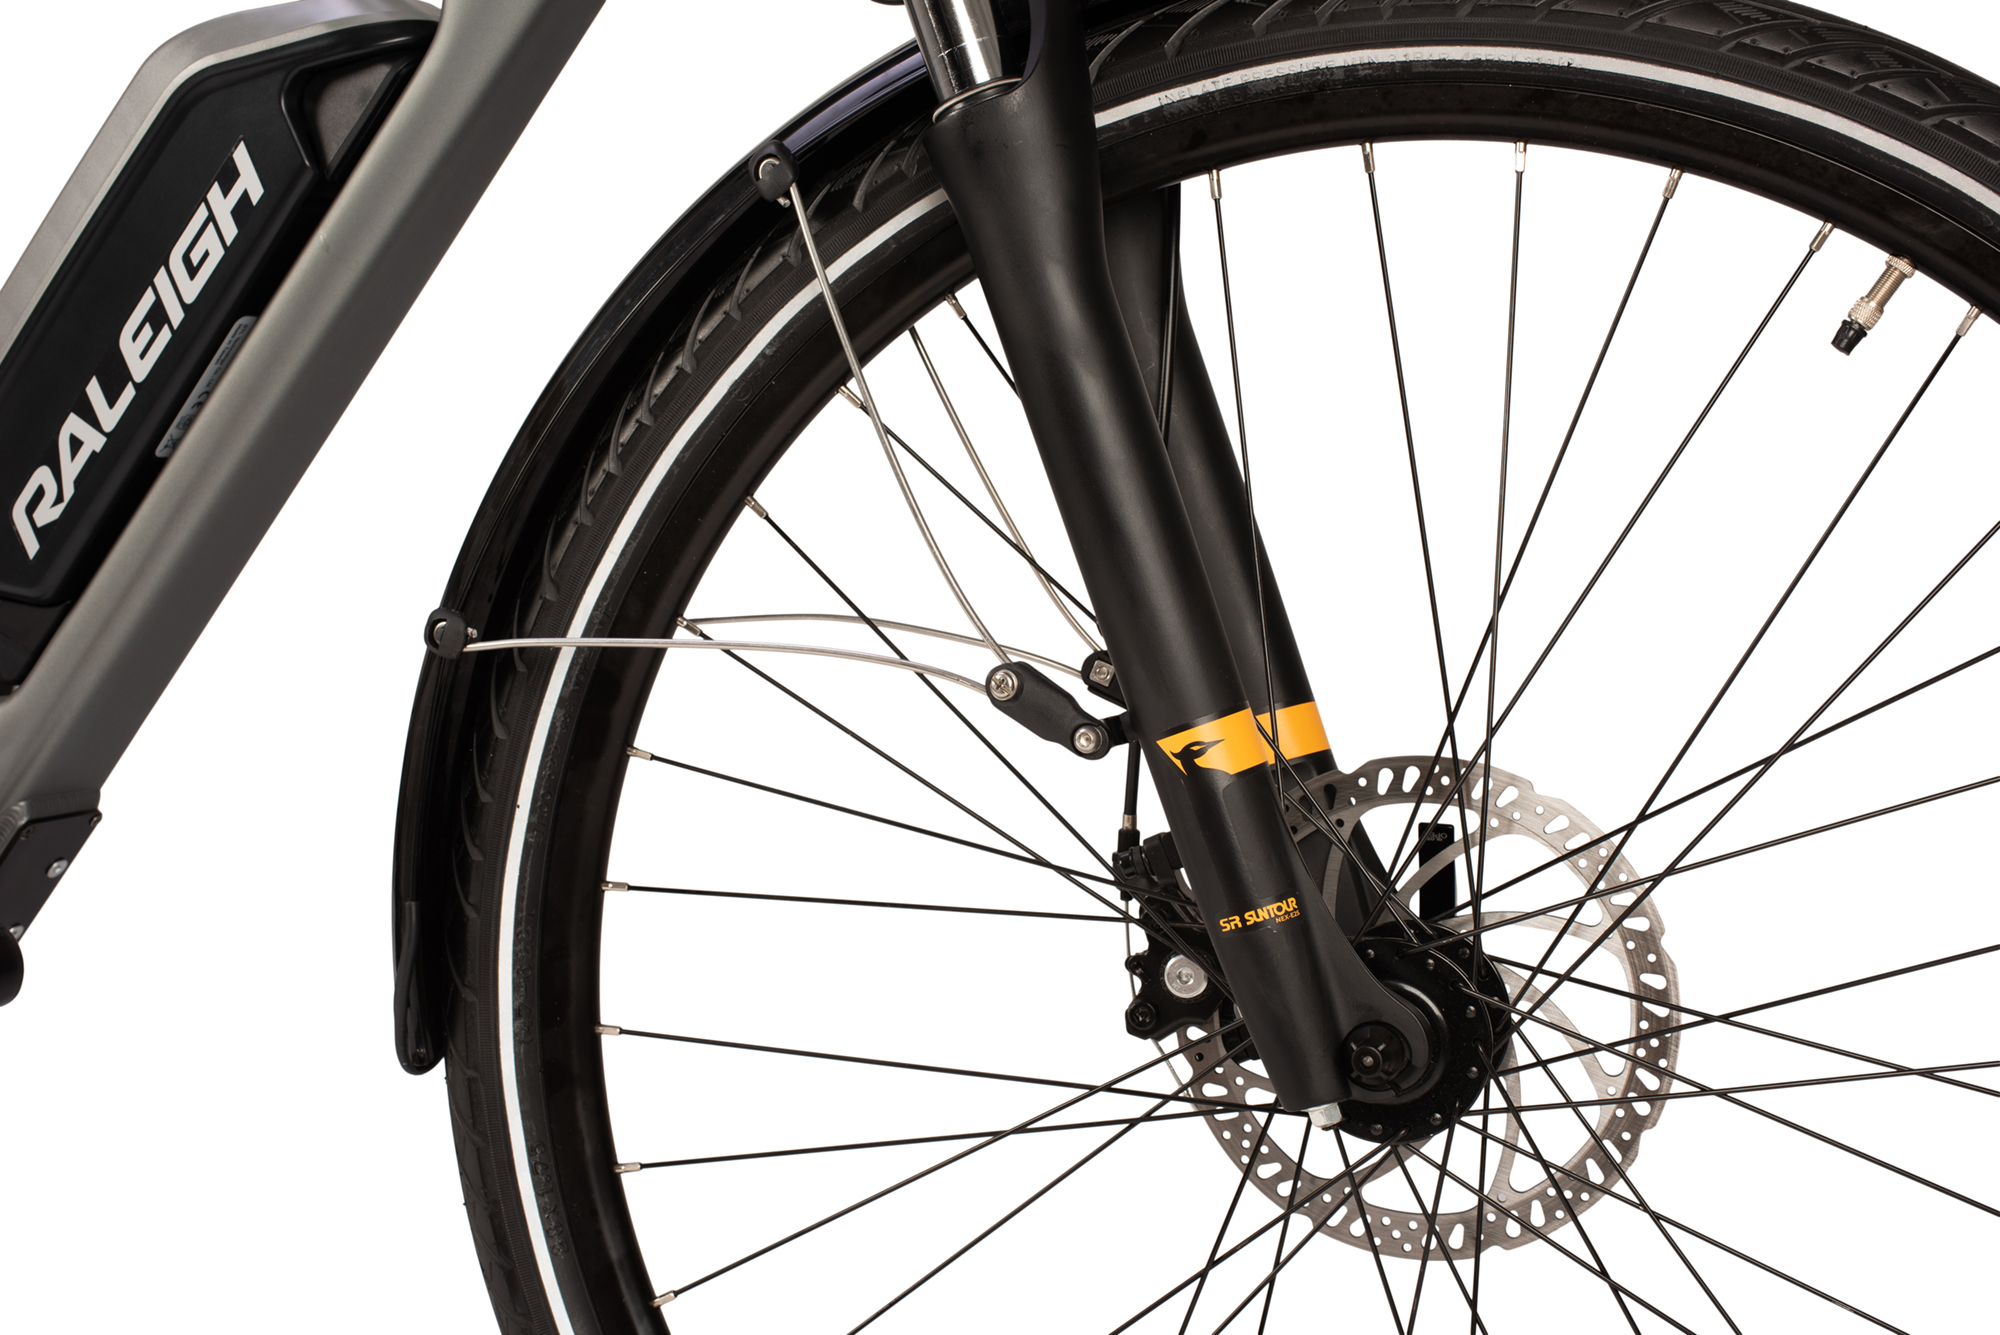 Front suspension forks and disc brakes on the Raleigh Array electric bike